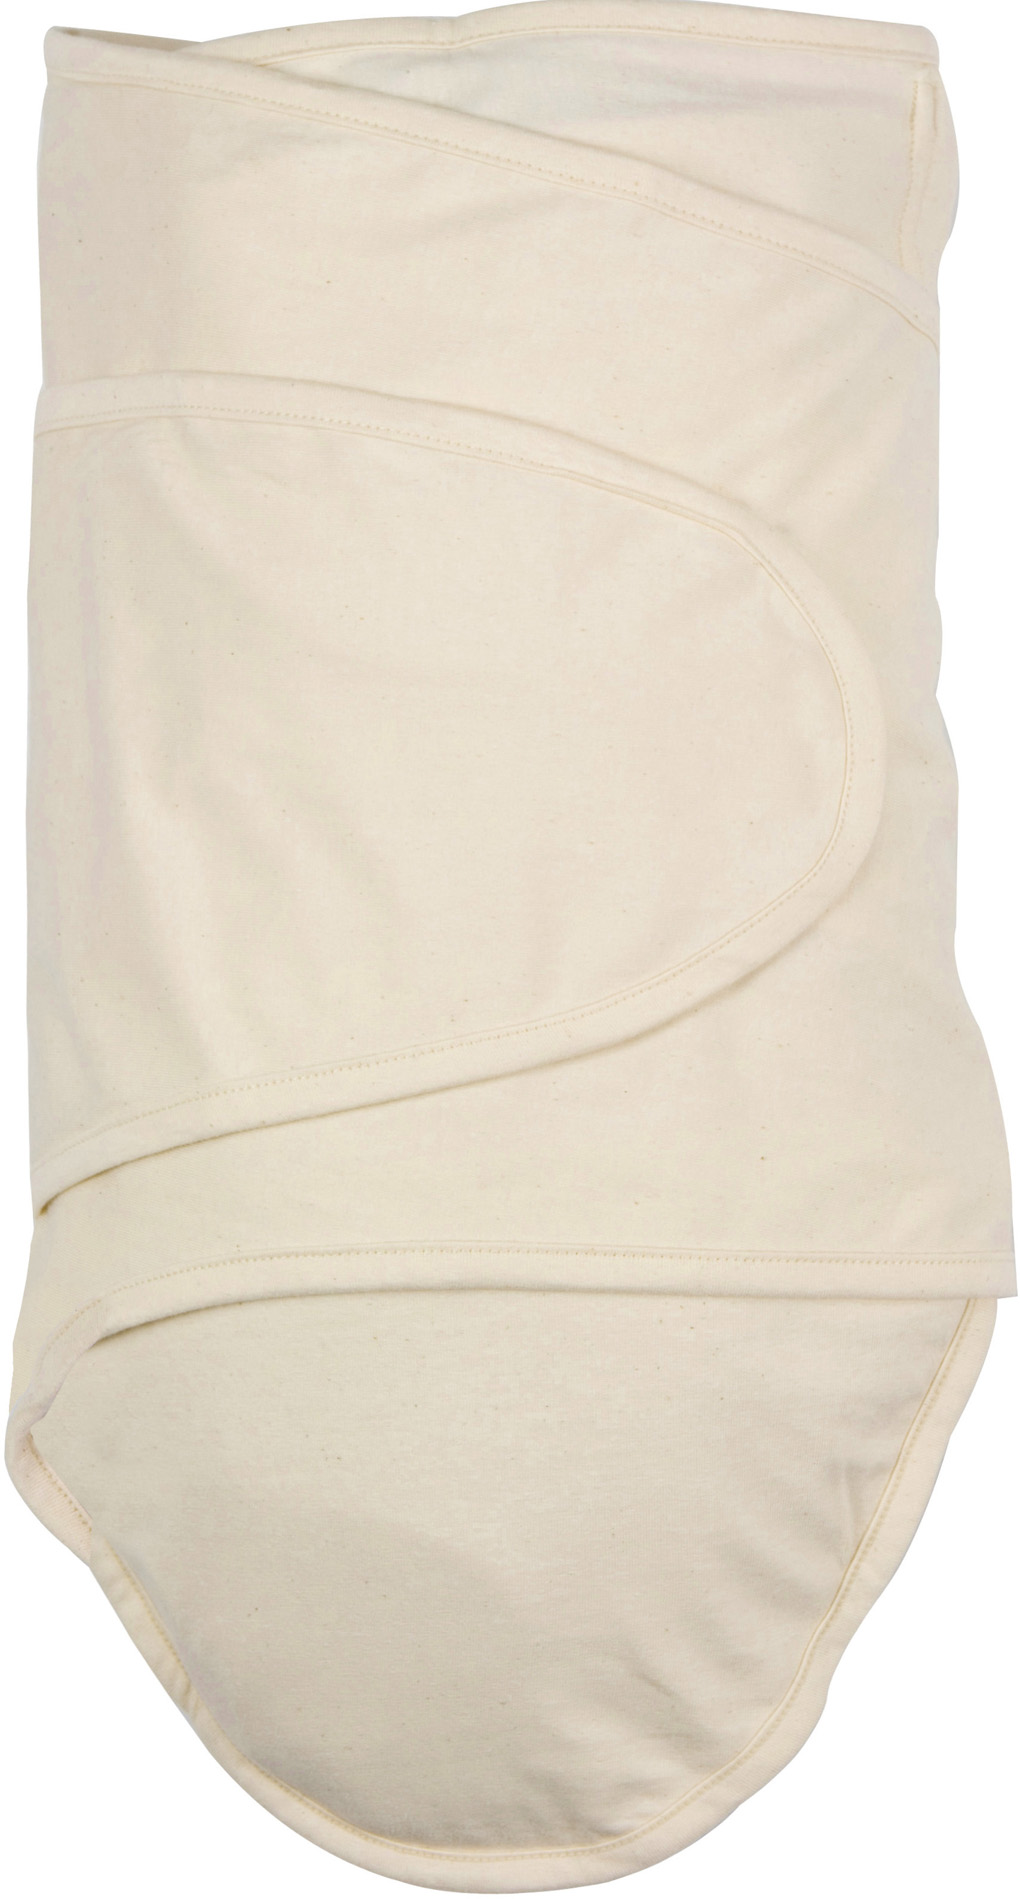 Miracle Blanket®: Natural Beige